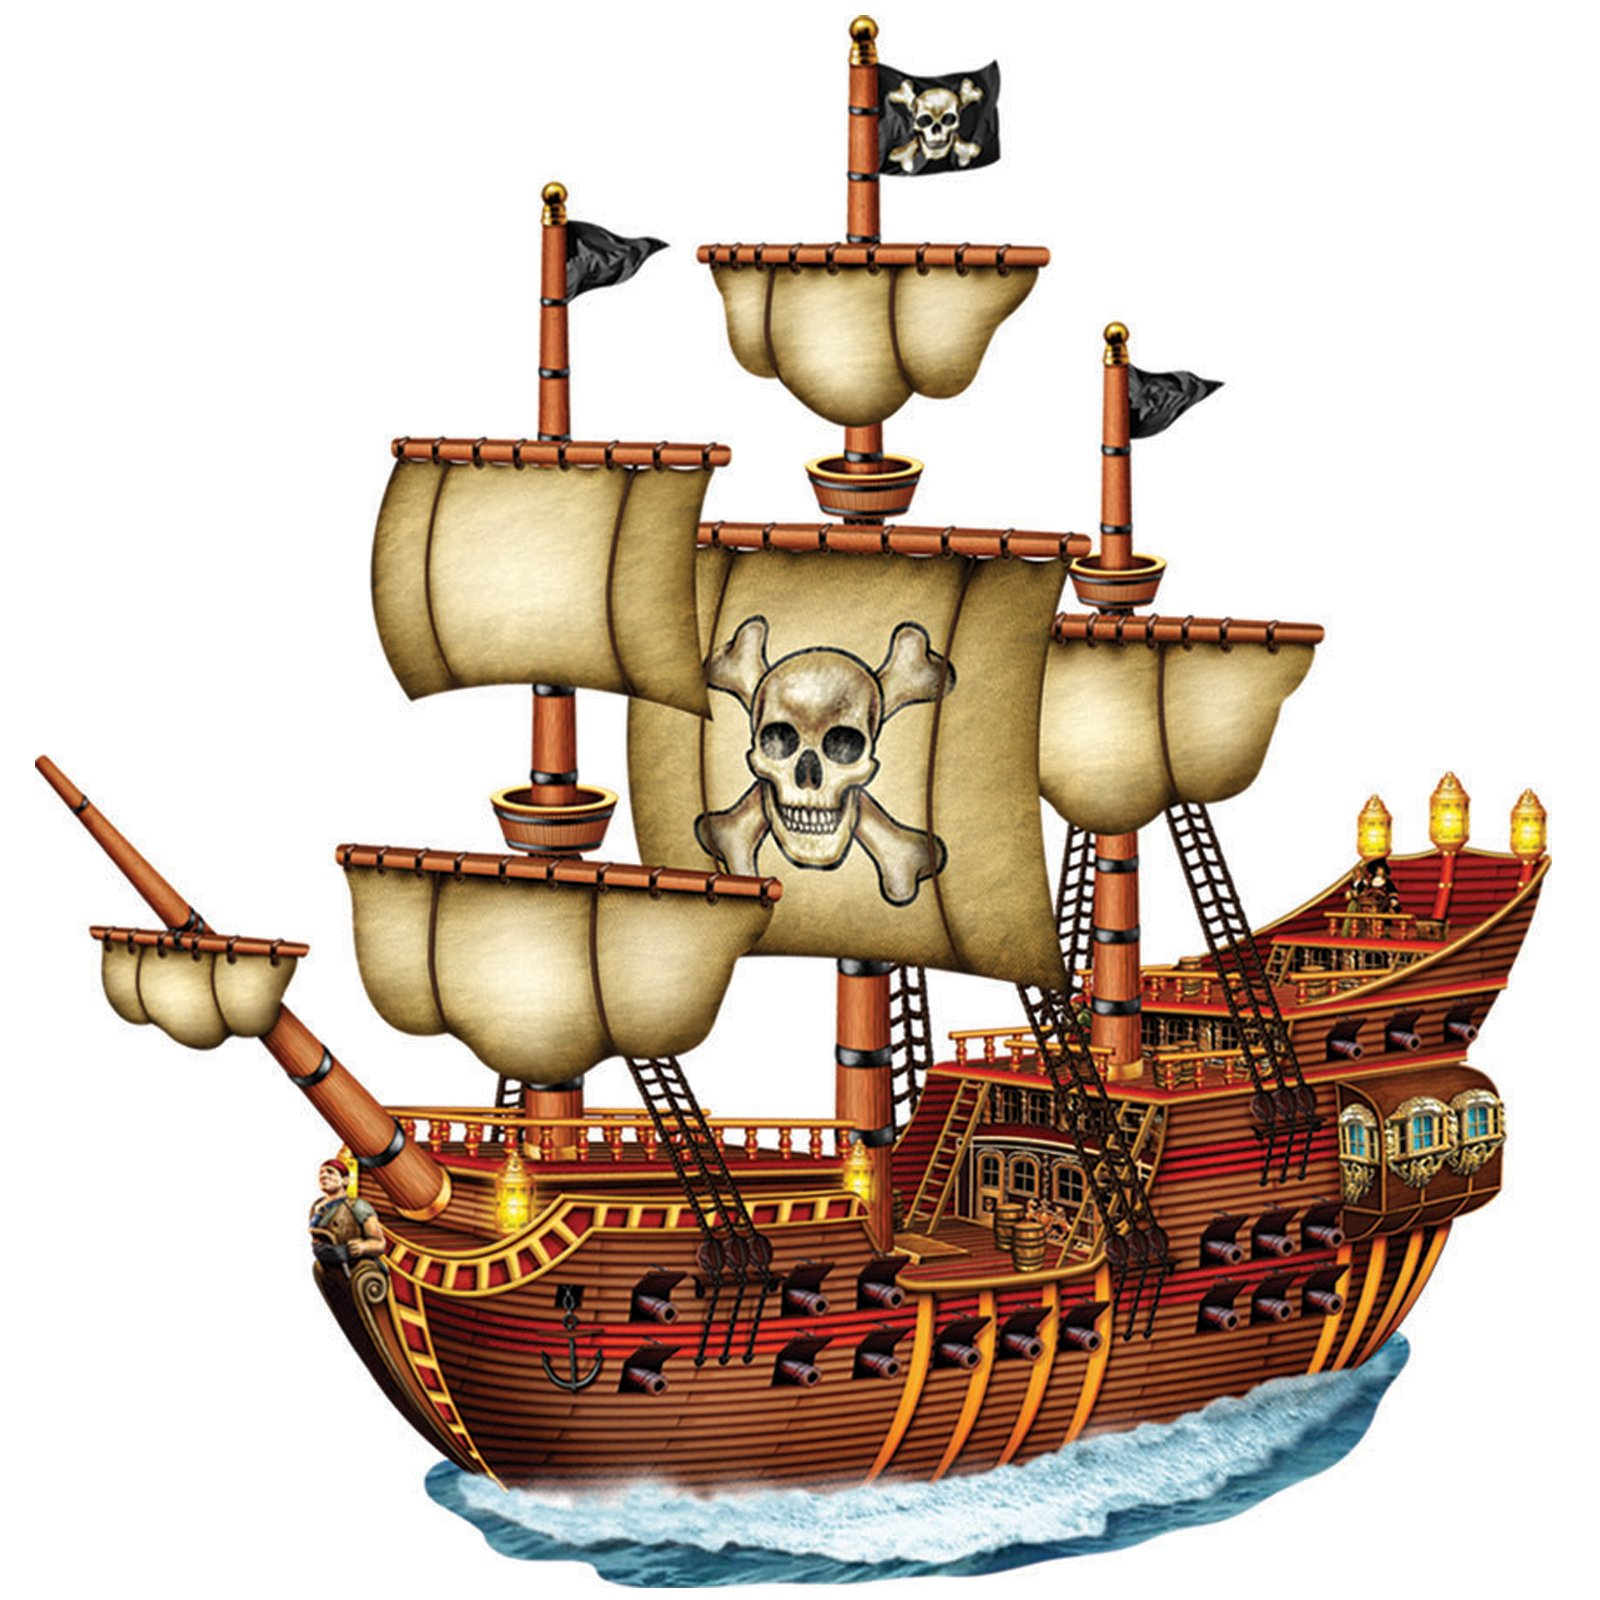 Sailing Ship clipart pirate the caribbean Pirate ships Themed Pirate Ship